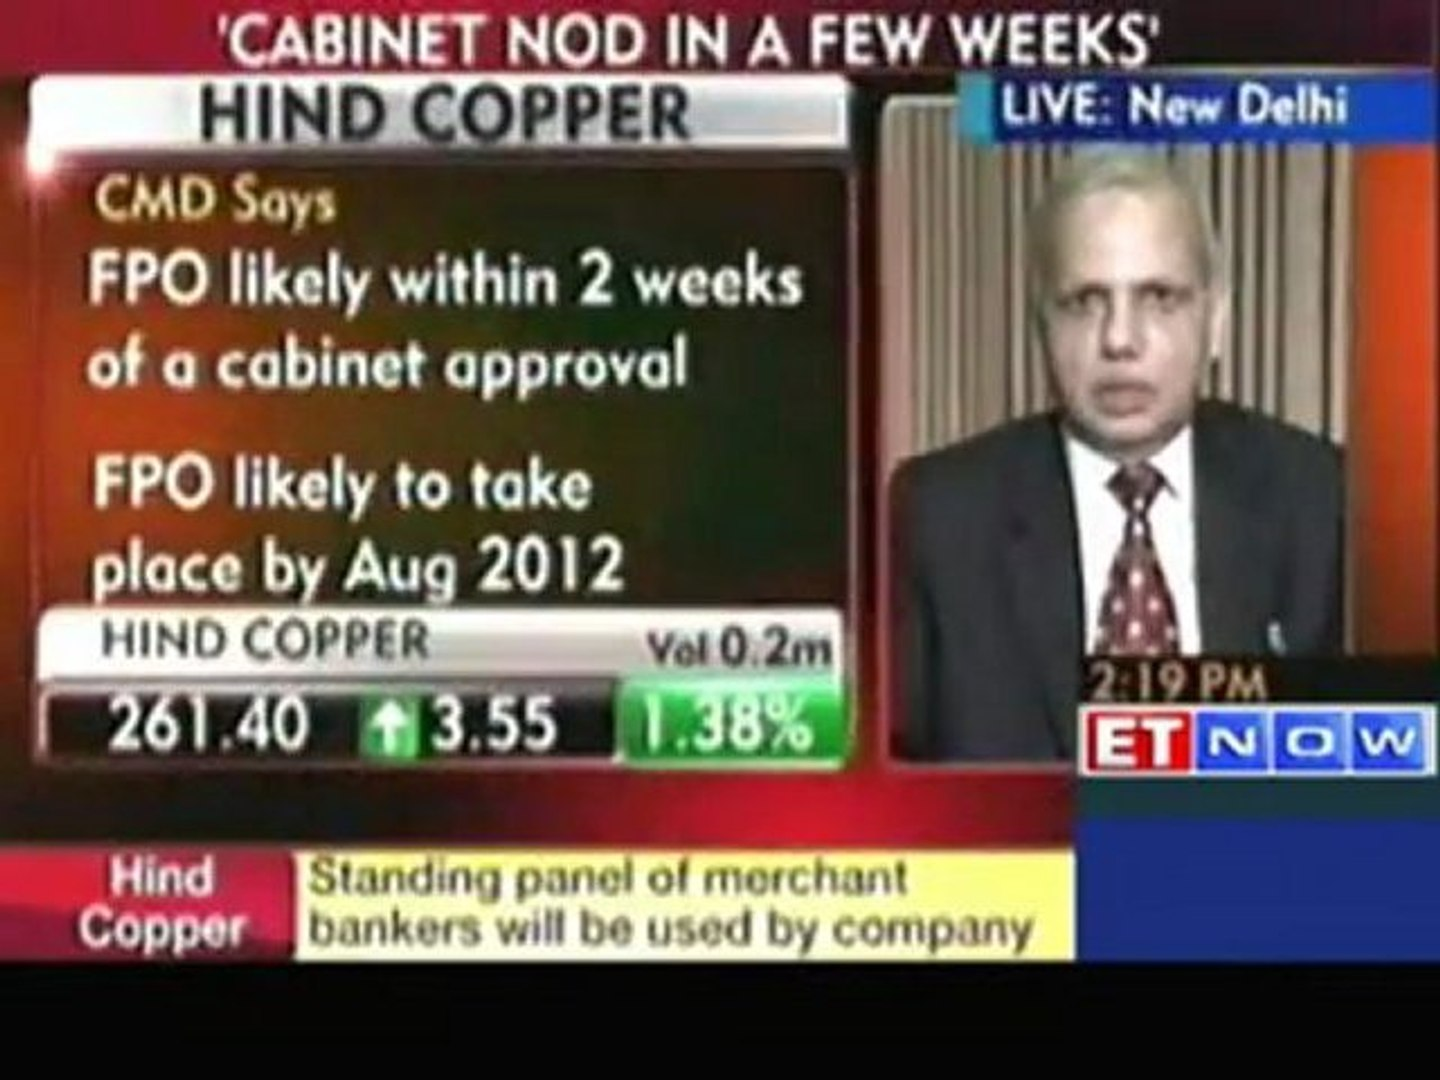 FPO is likely to take the auction route: Hind Copper